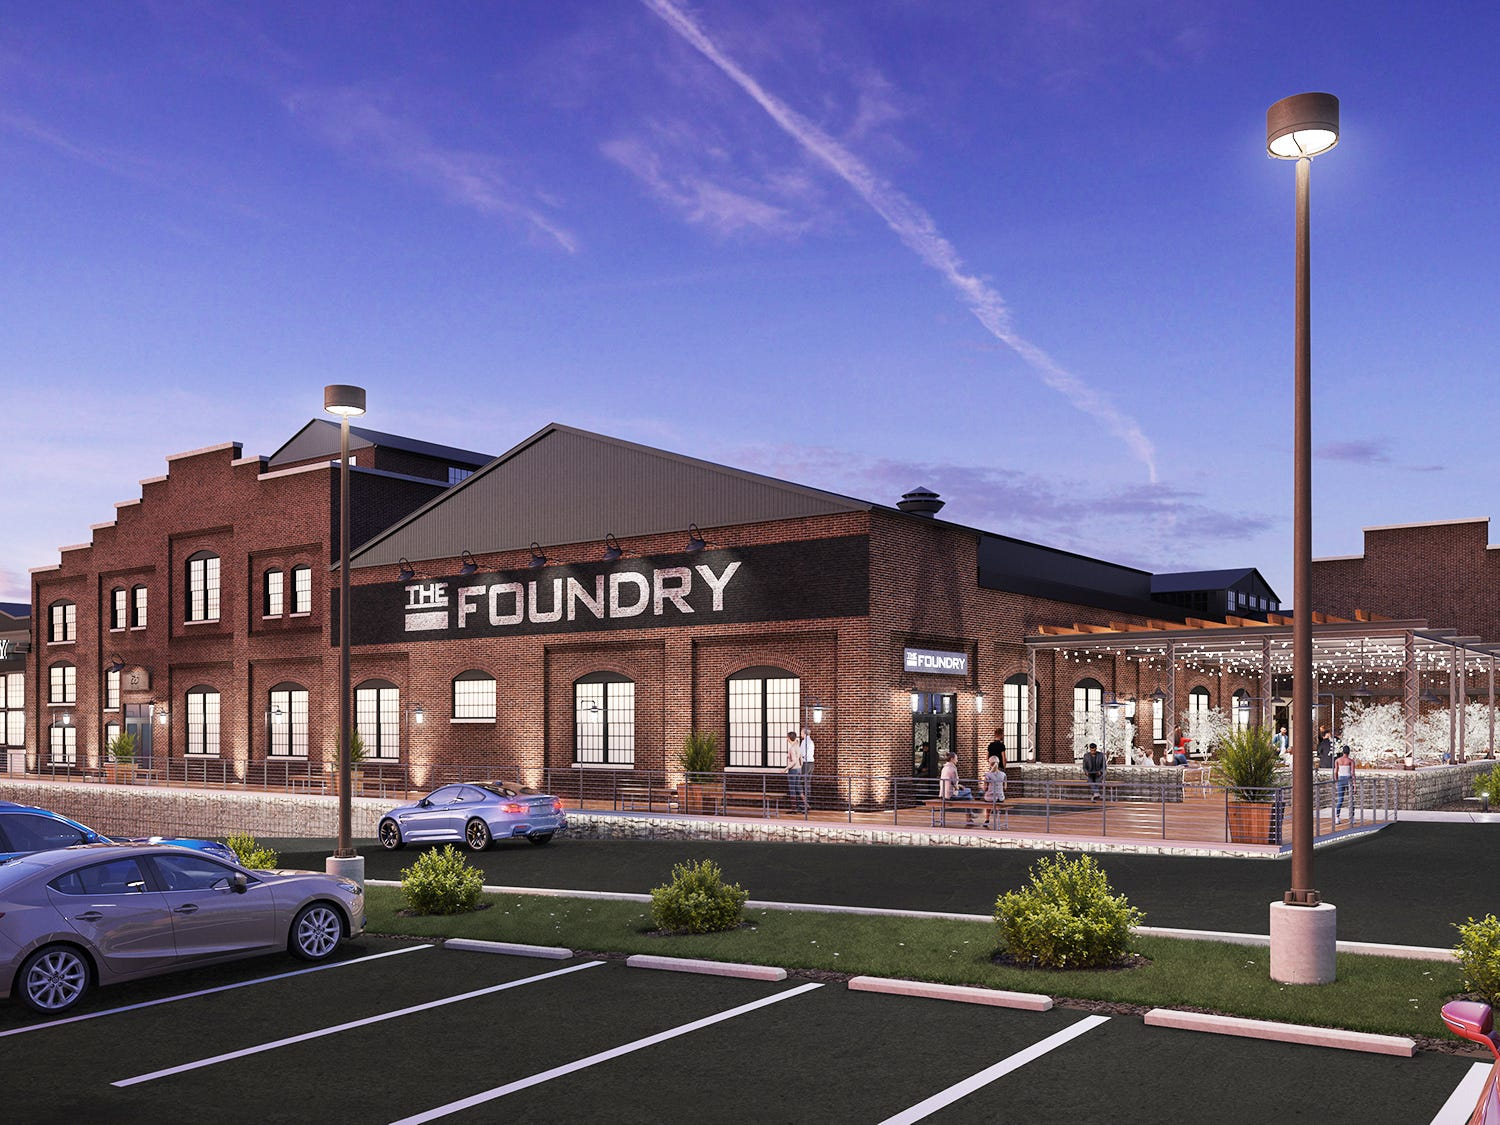 This is an artist's rendition of what the foundry building exterior could look like.